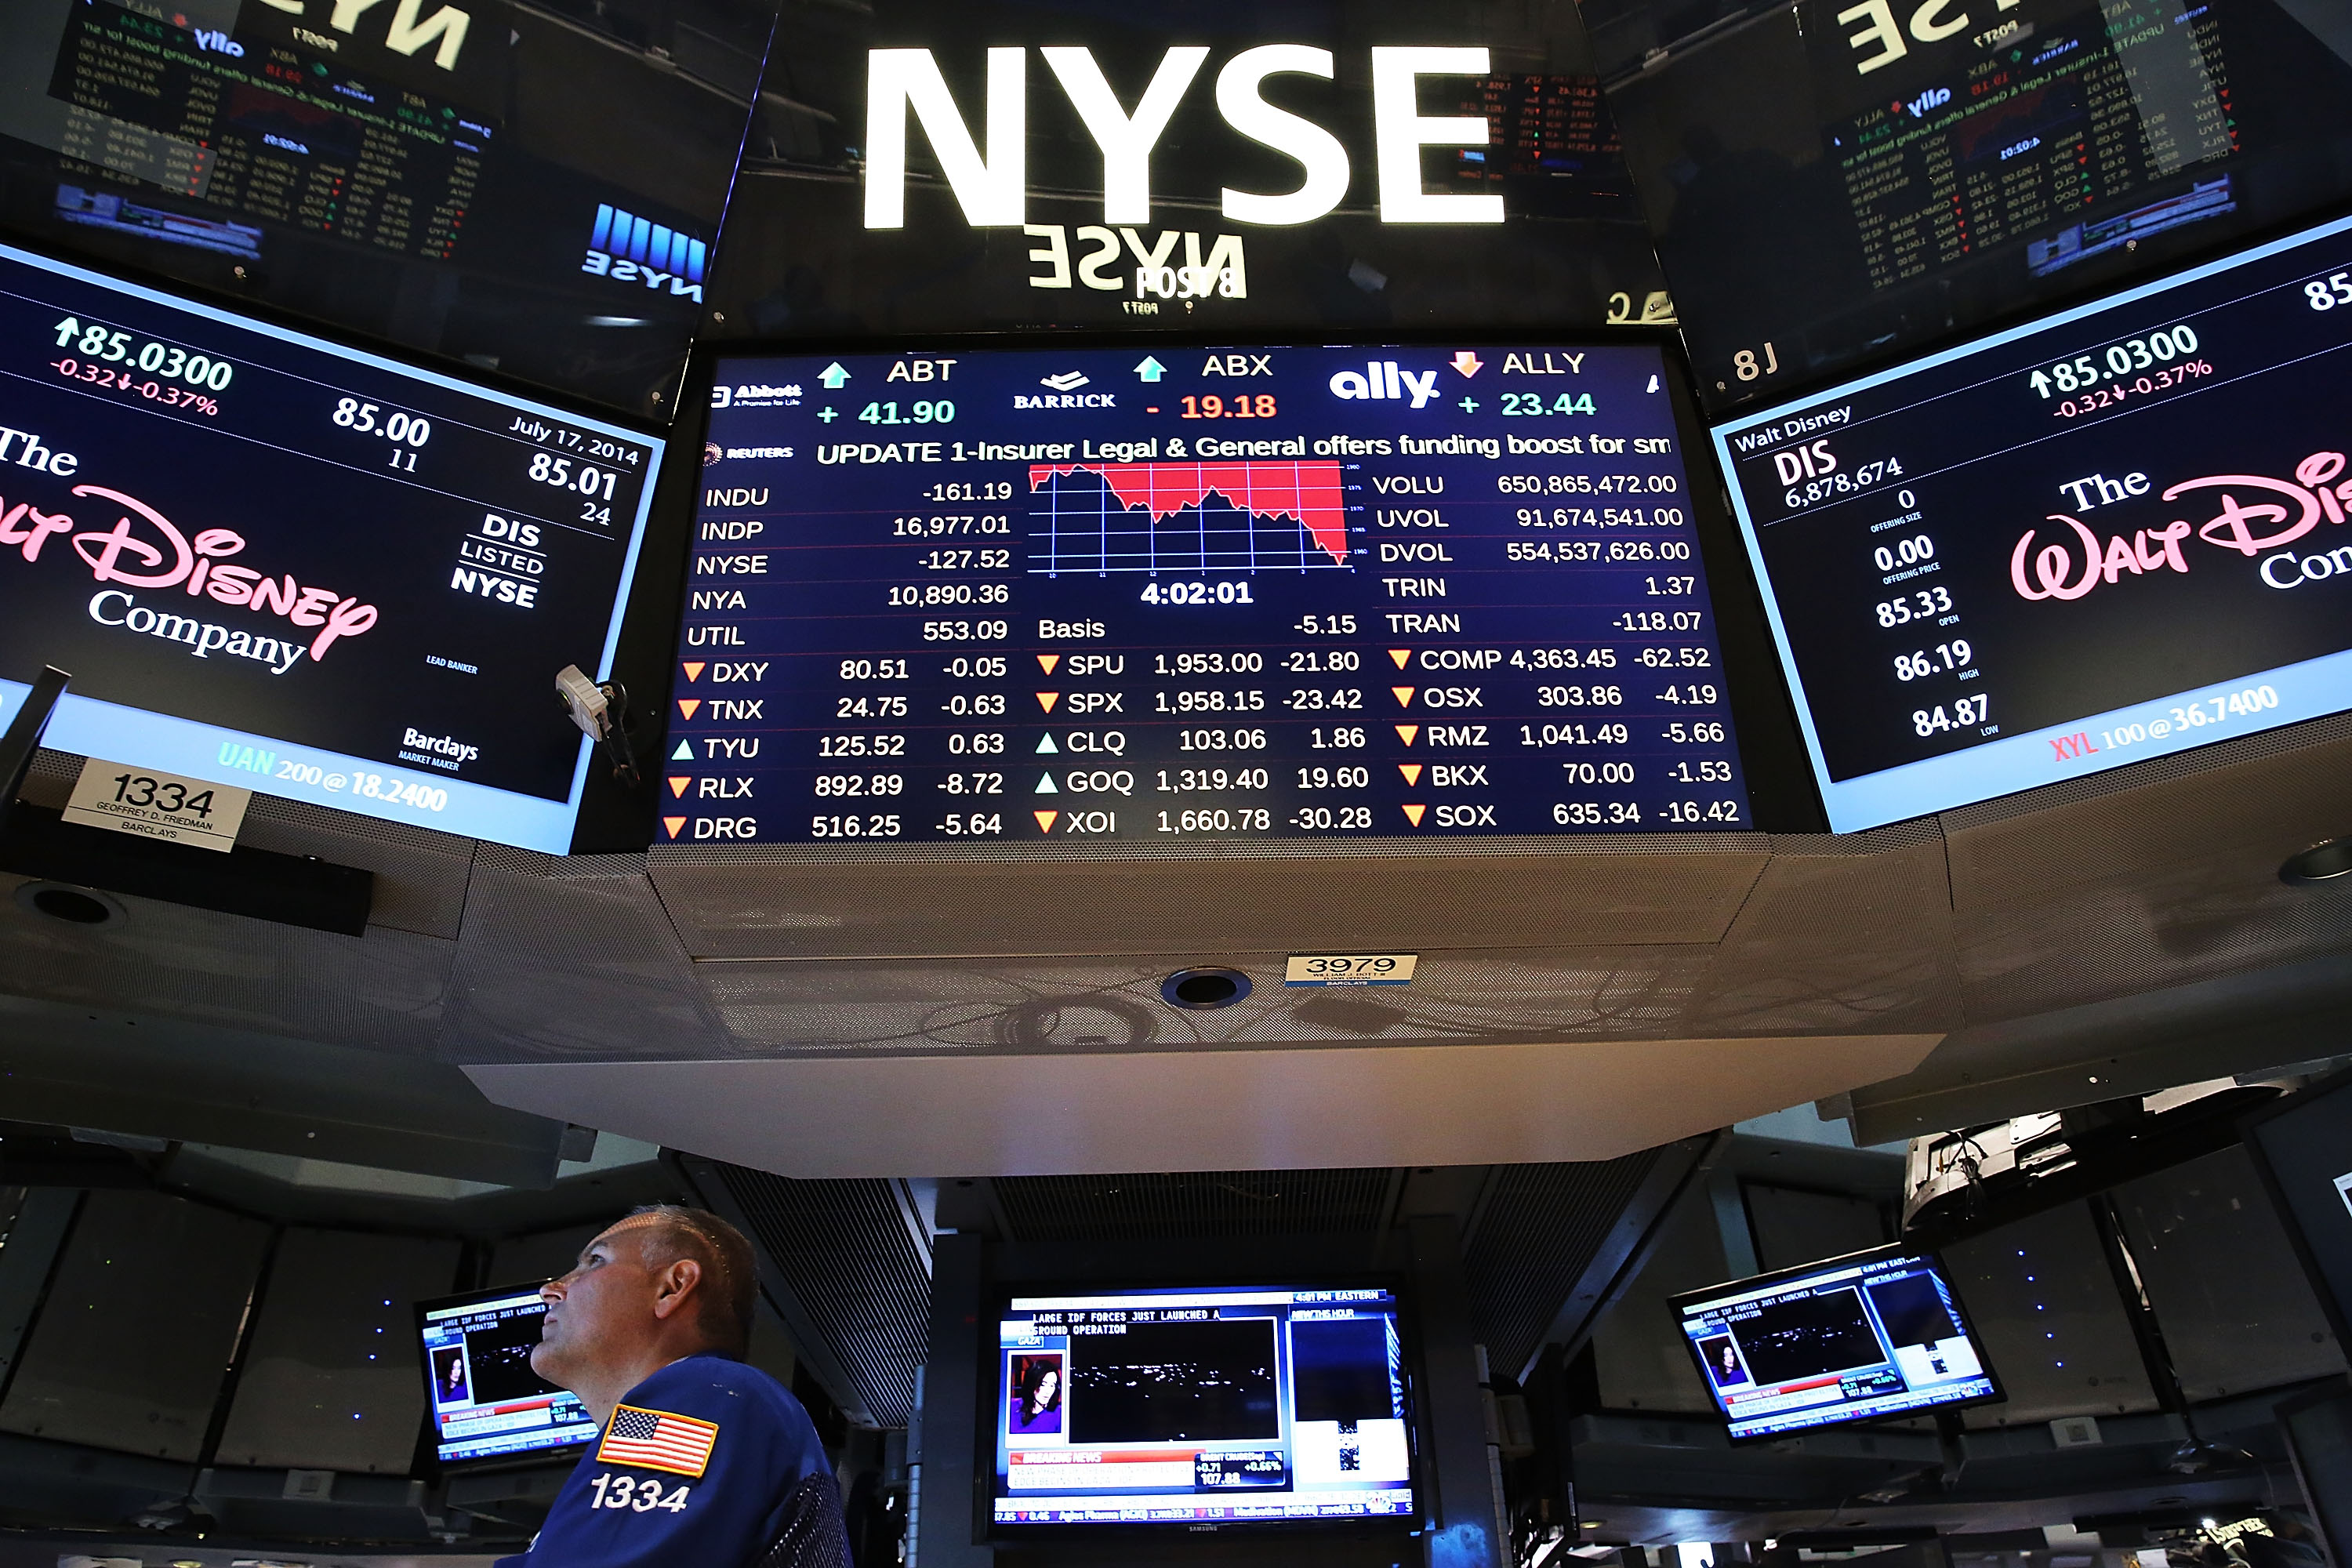 The single most important piece of advice during a stock market crash: don't sell